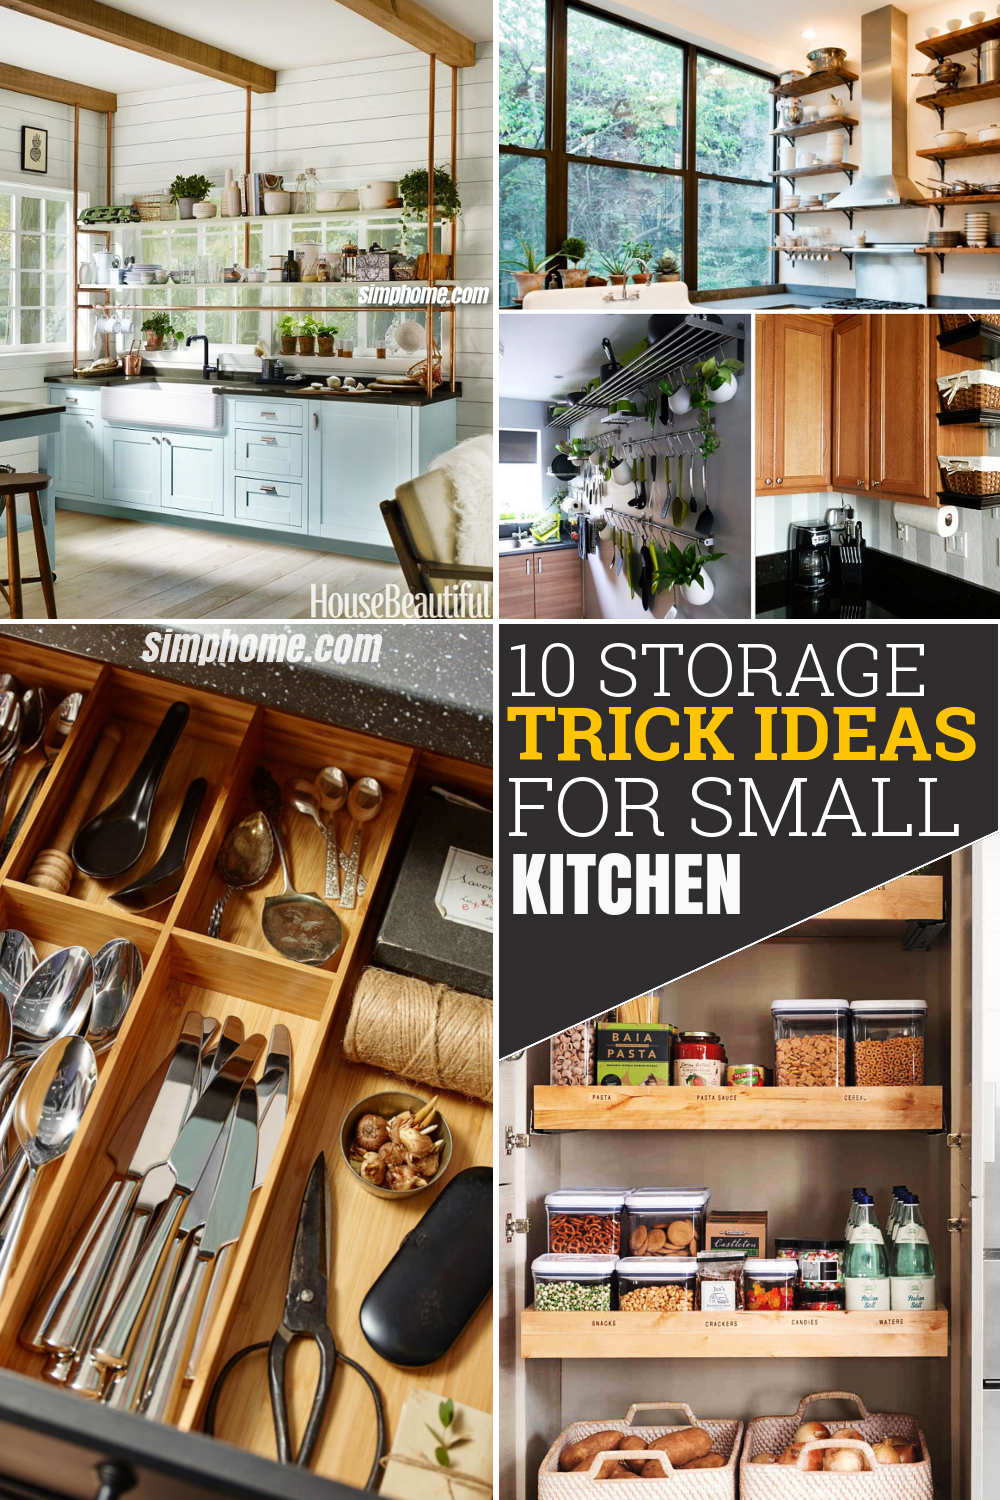 10 Storage Tricks Idea for Small Kitchen via Simphome Pinterest Featured Image